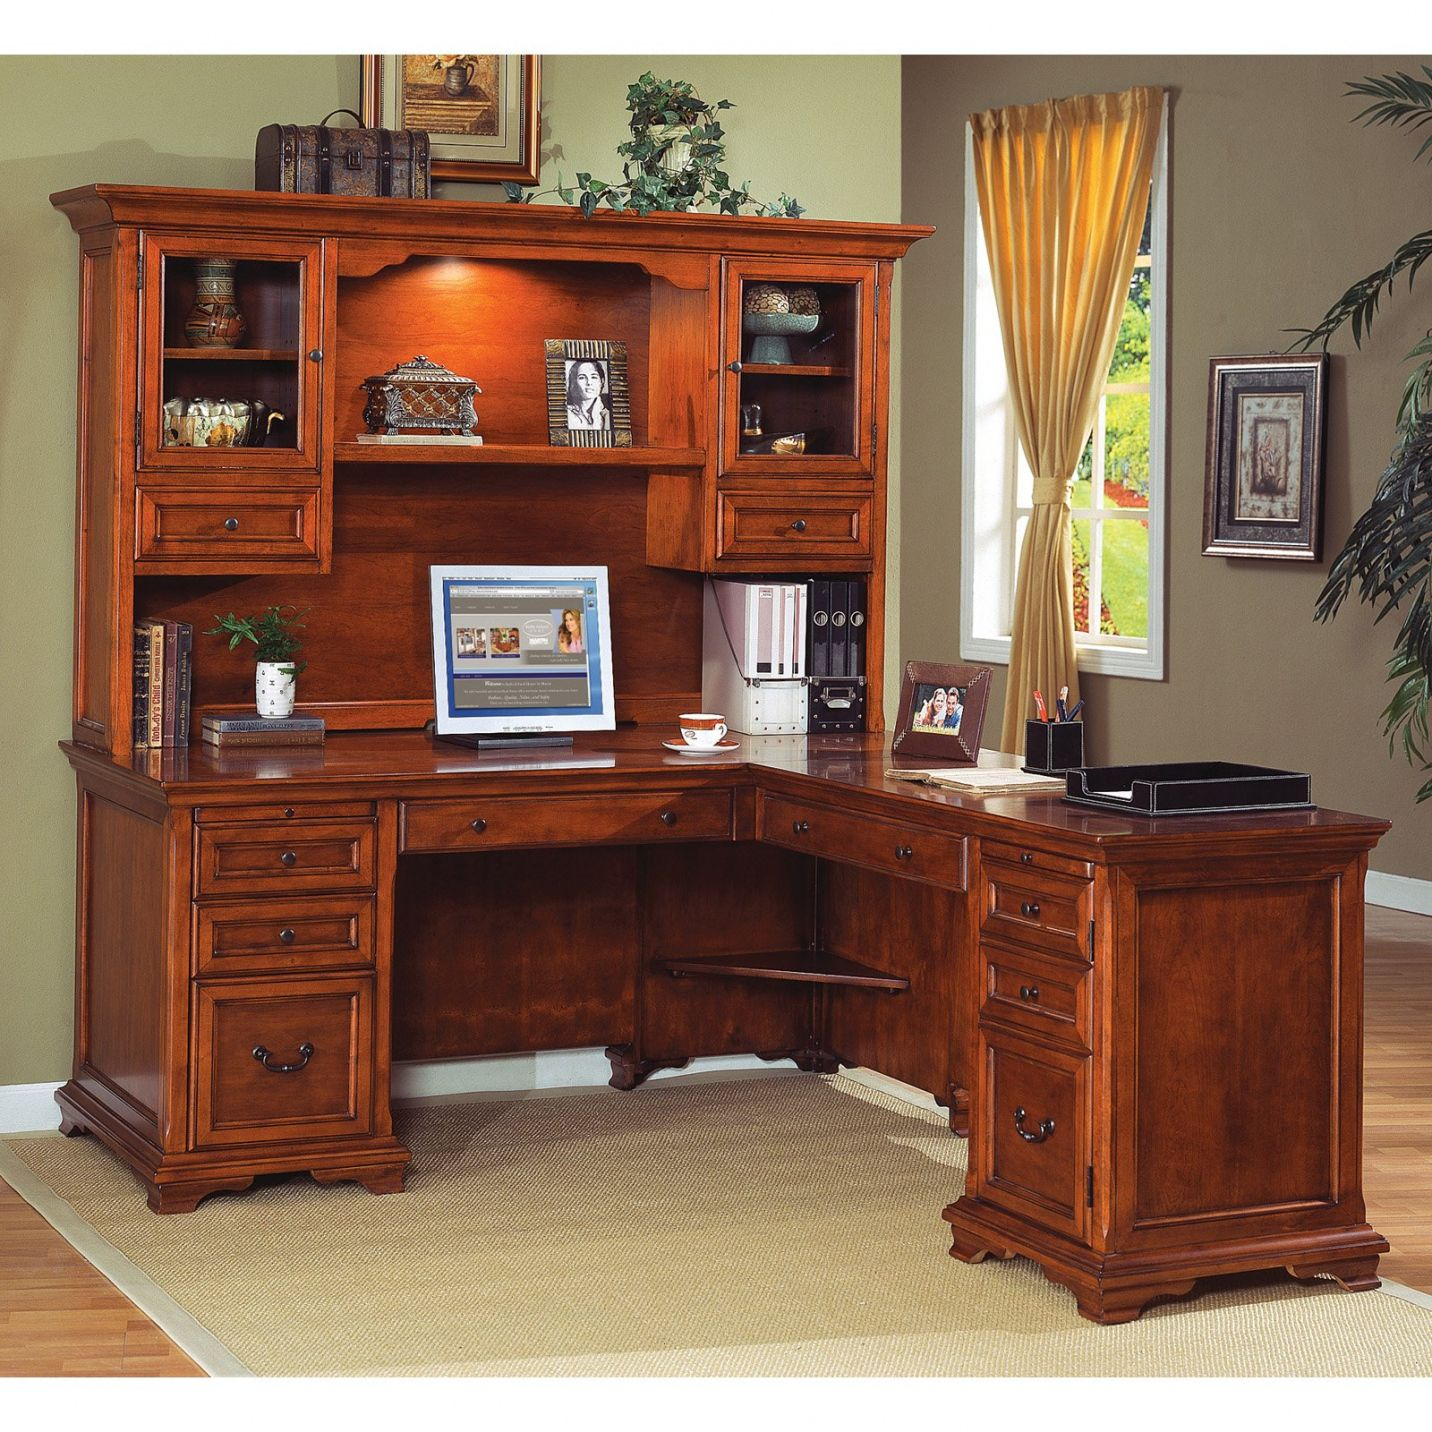 l shape office desks. L Shaped Desk With Hutch Home Office - Real Wood Furniture Check More At Shape Desks